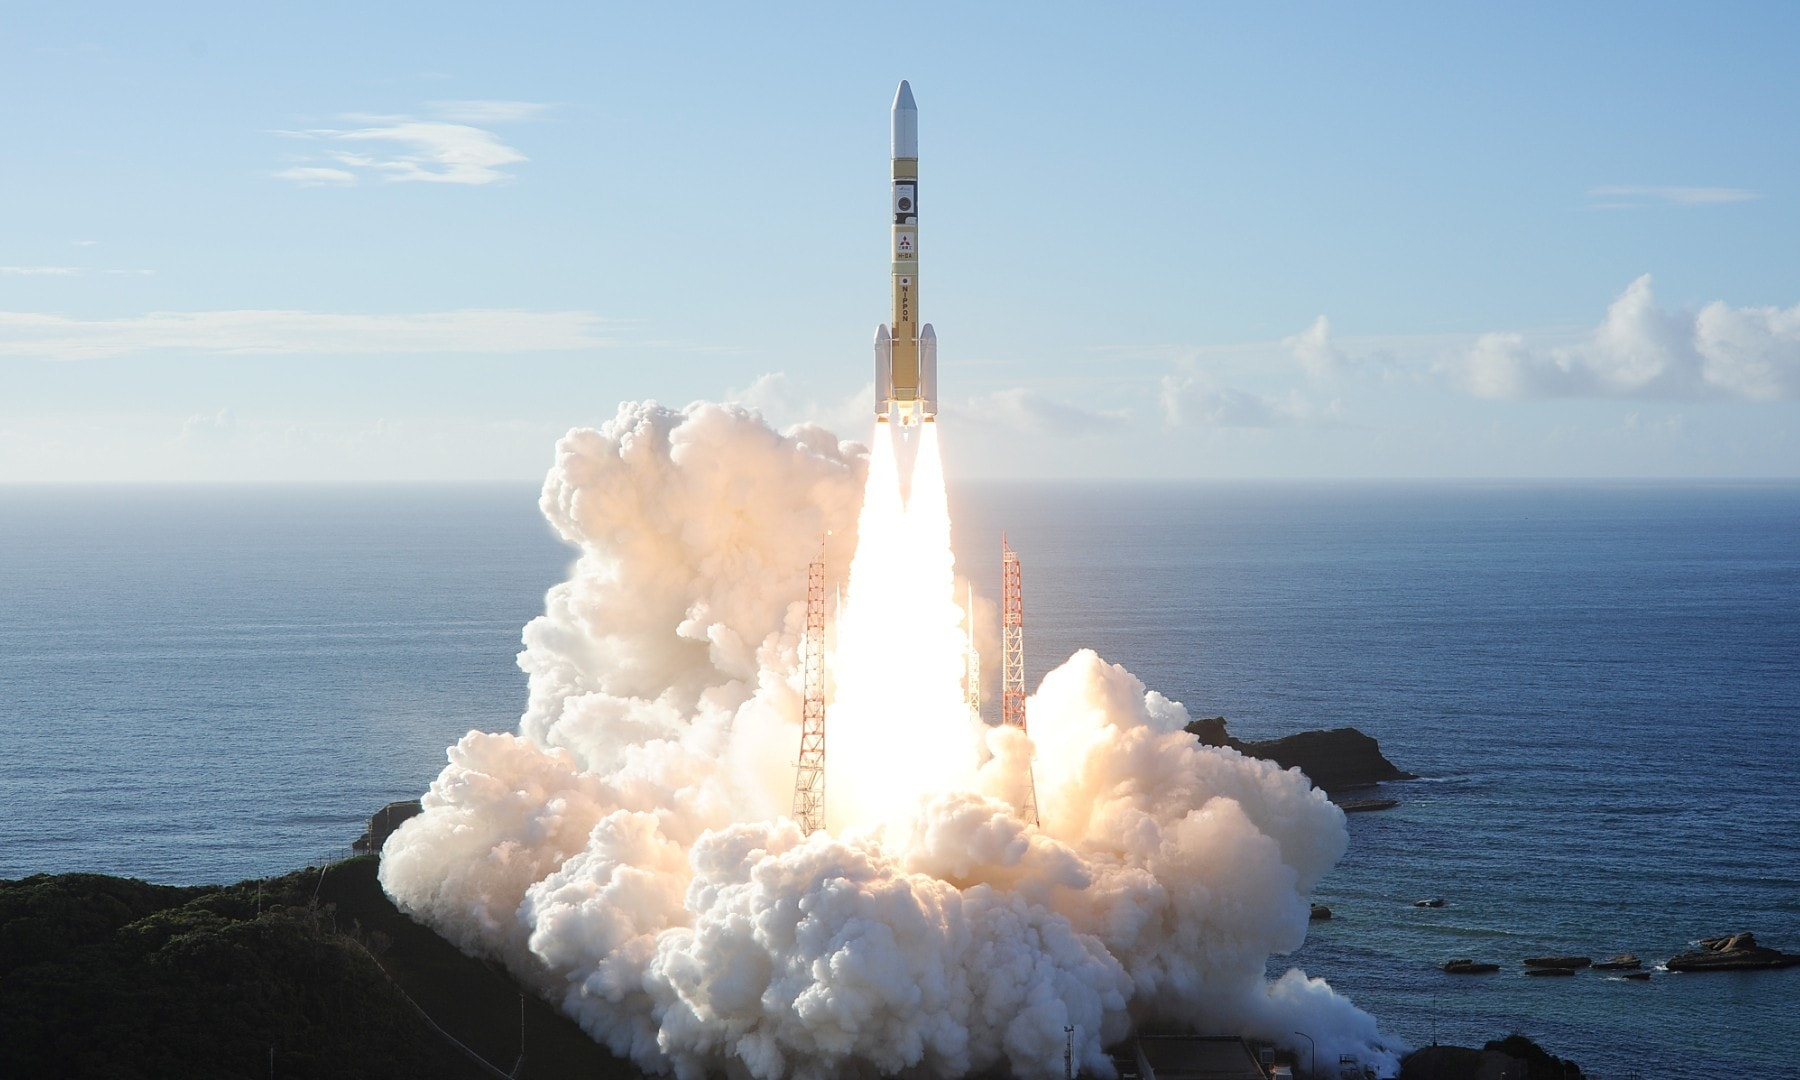 An H-2A rocket carrying the Hope Probe, lifts off from the launching pad at Tanegashima Space Center on the island of Tanegashima, Japan. — Reuters